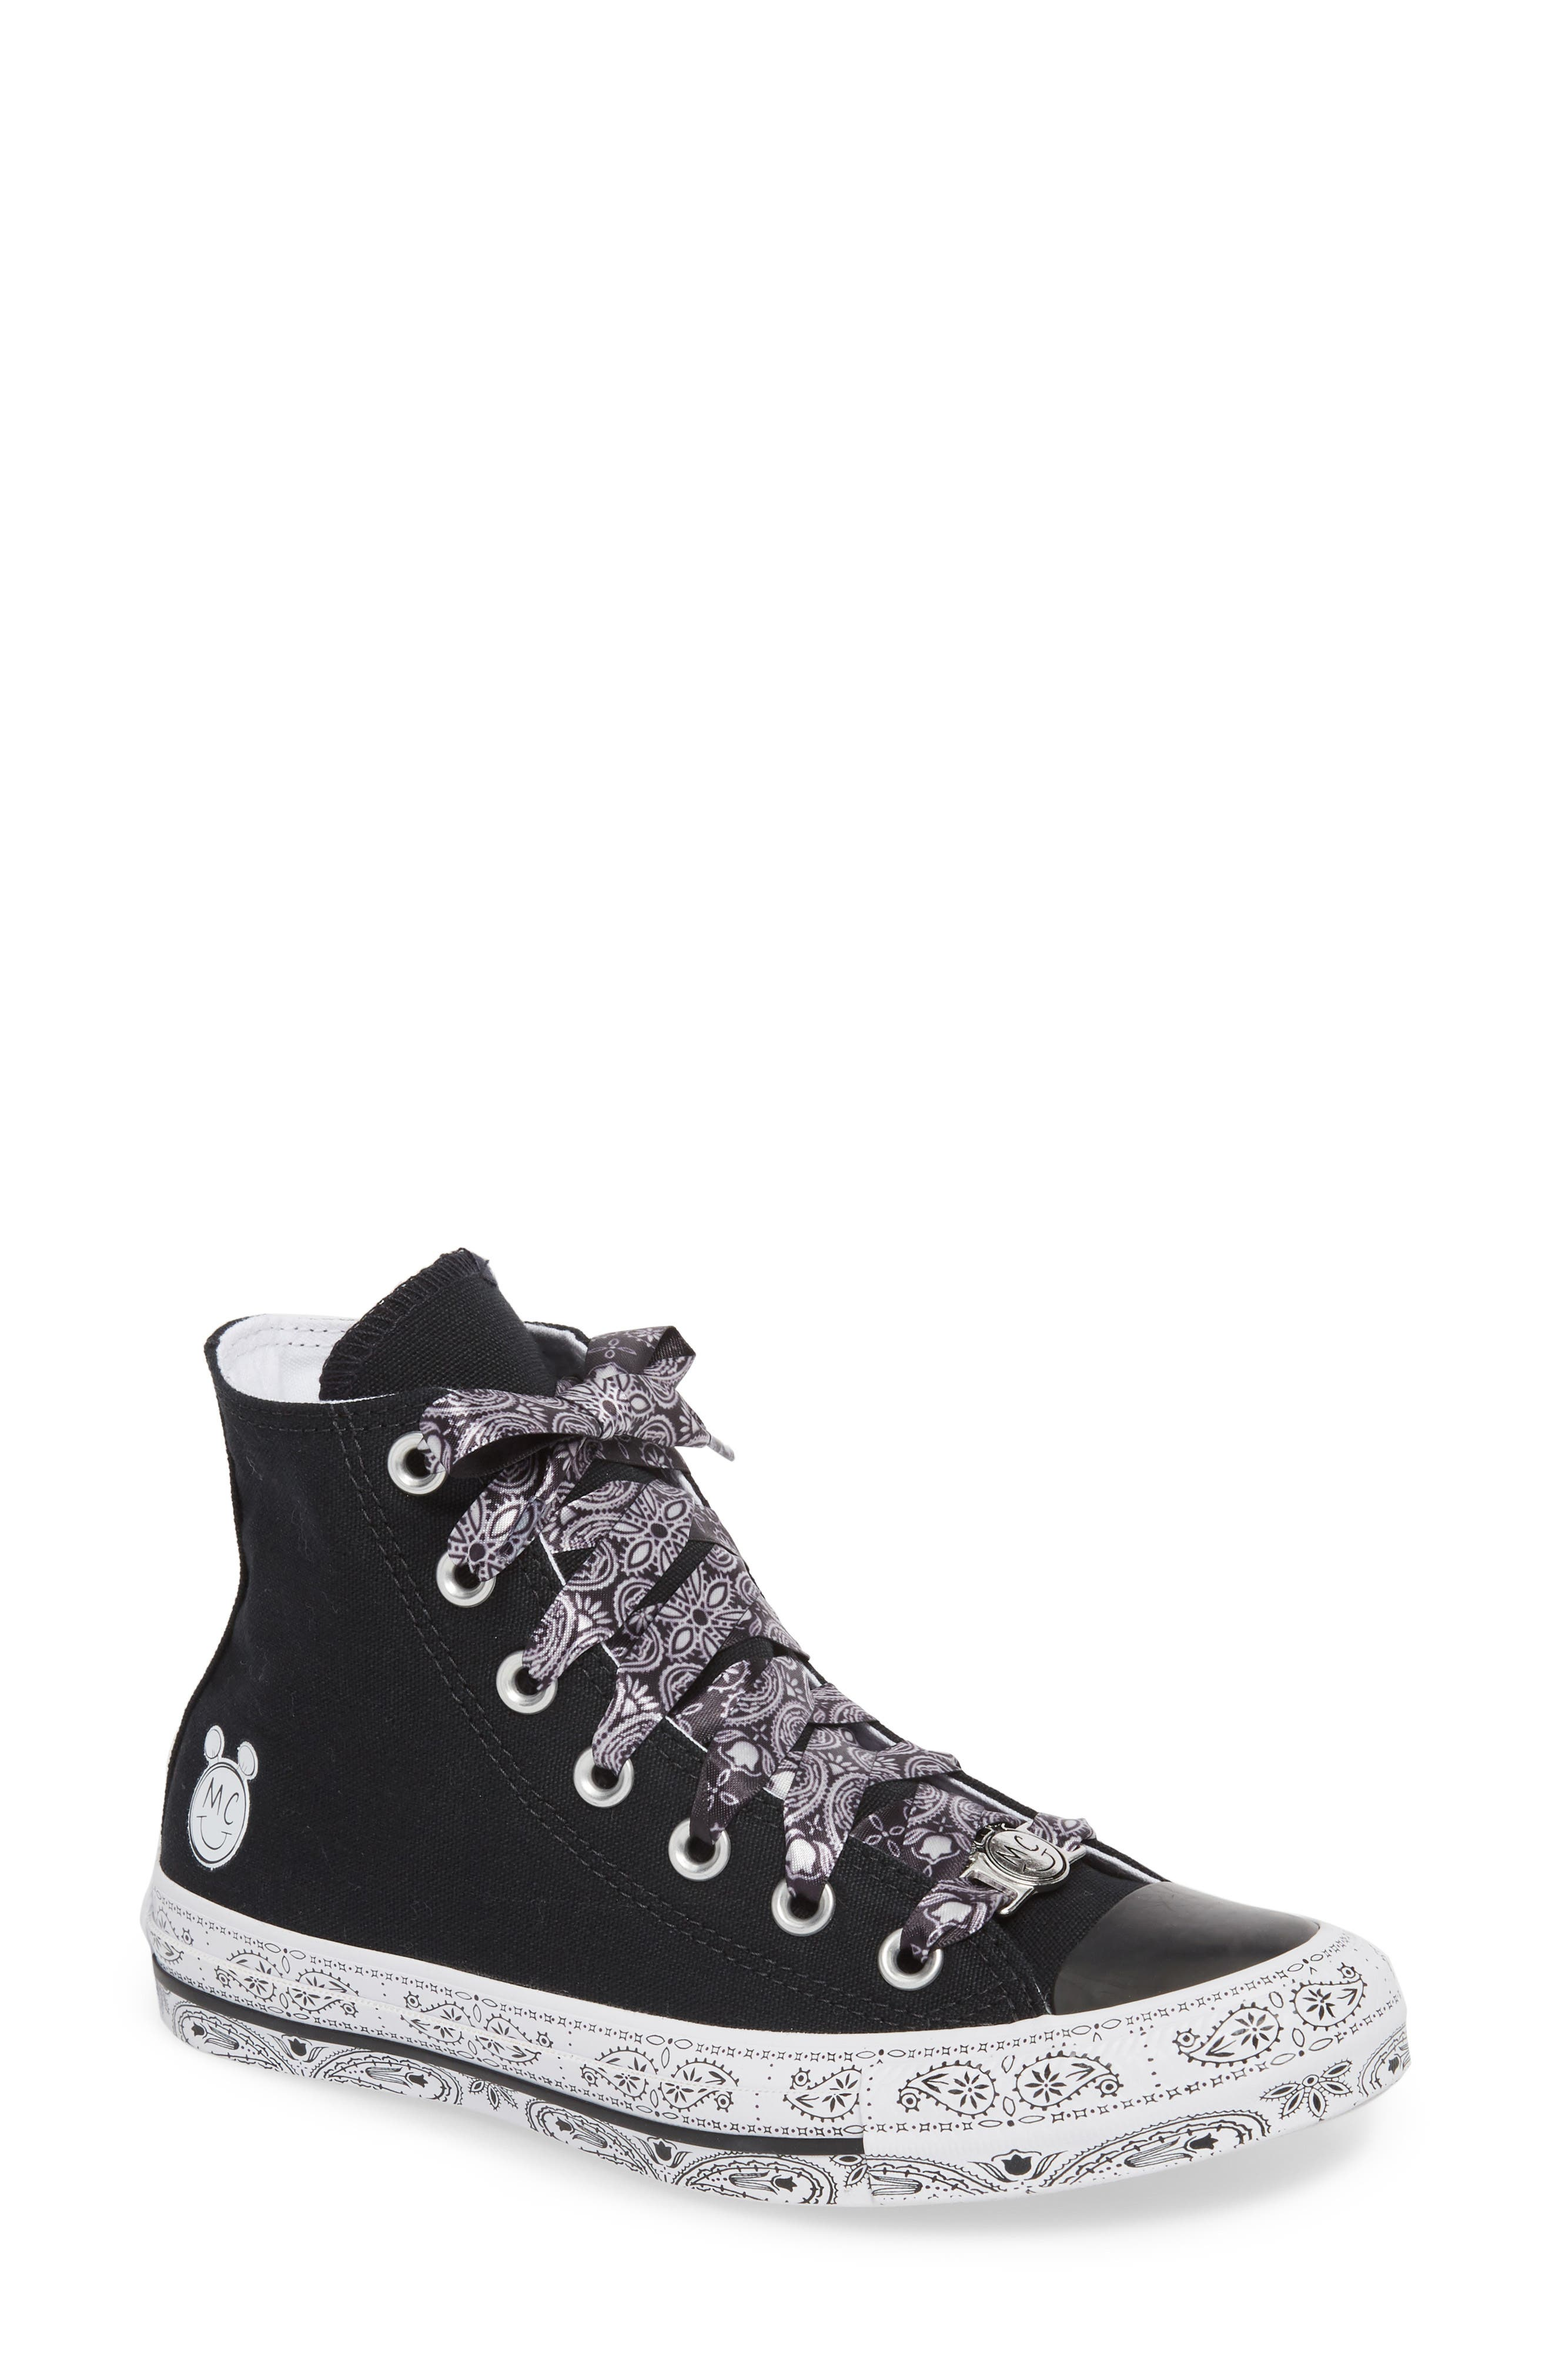 Converse x Miley Cyrus Chuck Taylor All Star Bandana High Top Sneaker (Women)